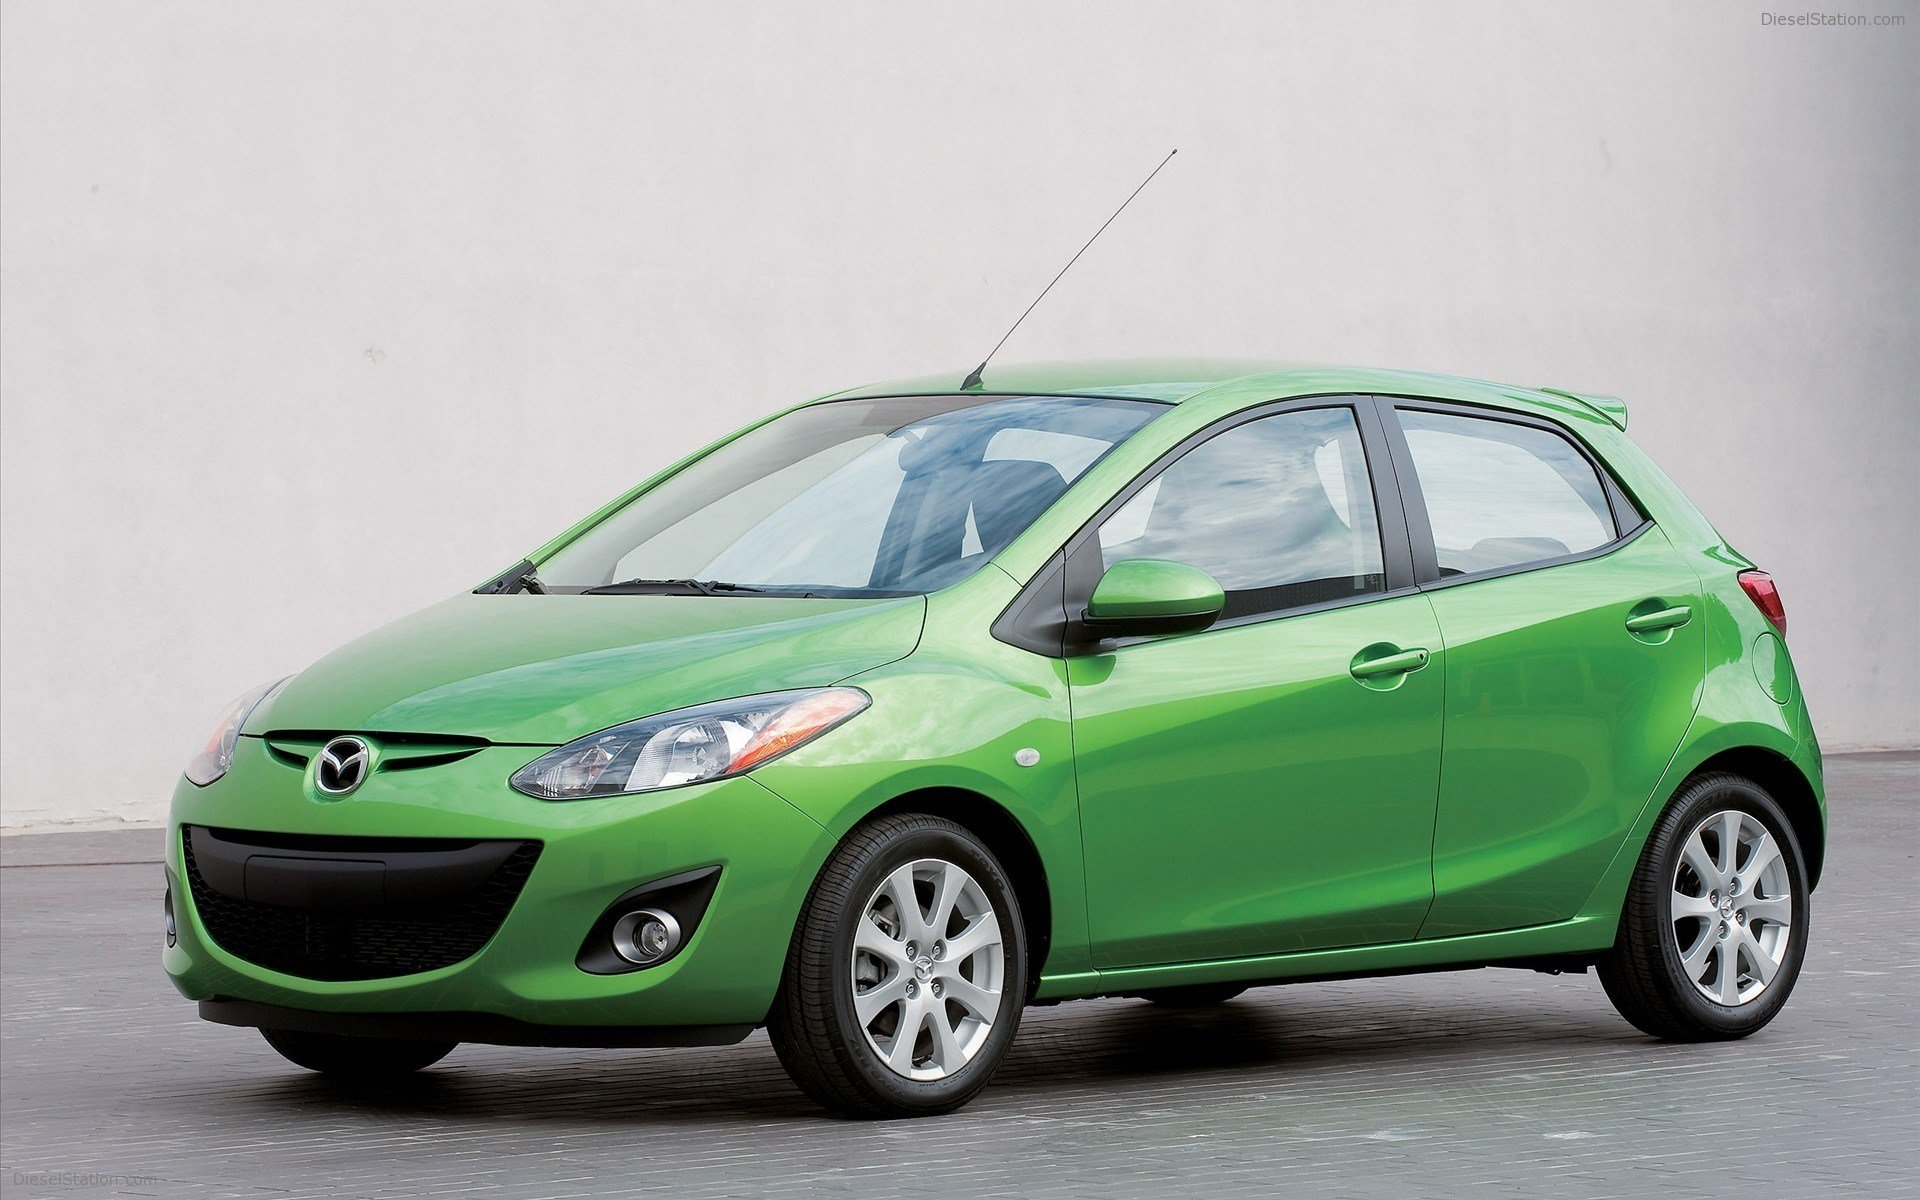 Latest Mazda 2 2011 Widescreen Exotic Car Photo 05 Of 14 Free Download